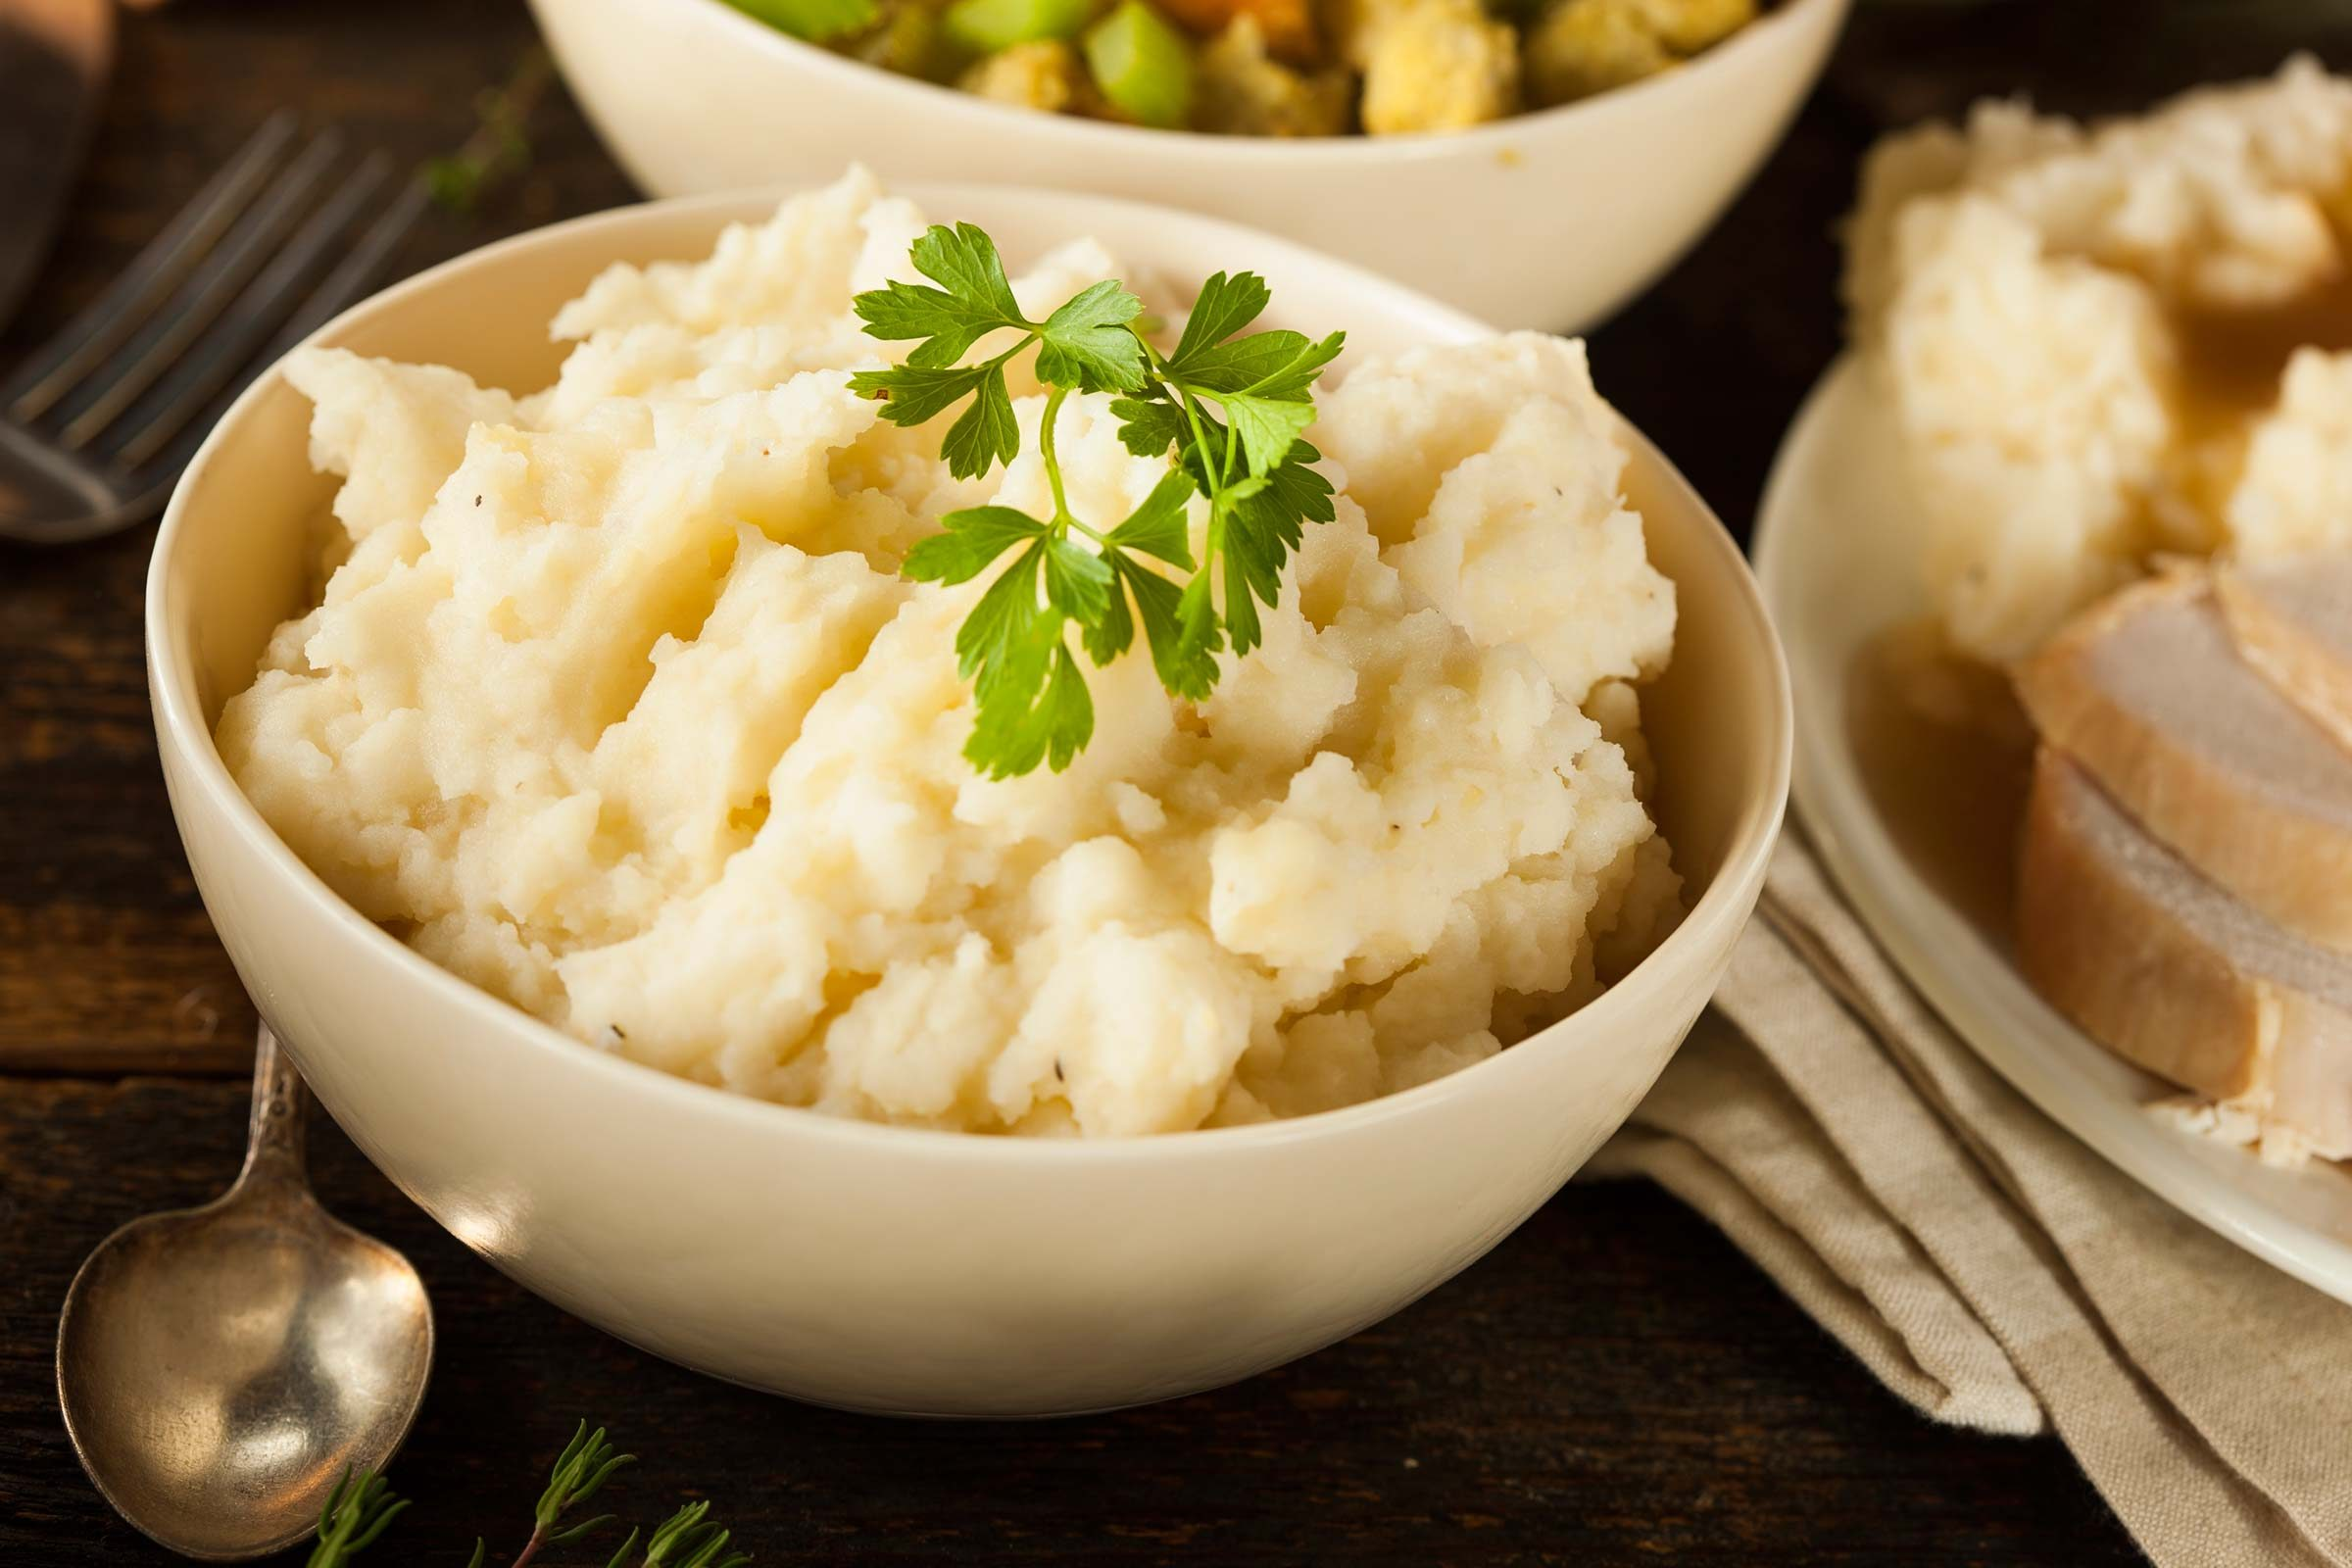 If you love mashed potatoes